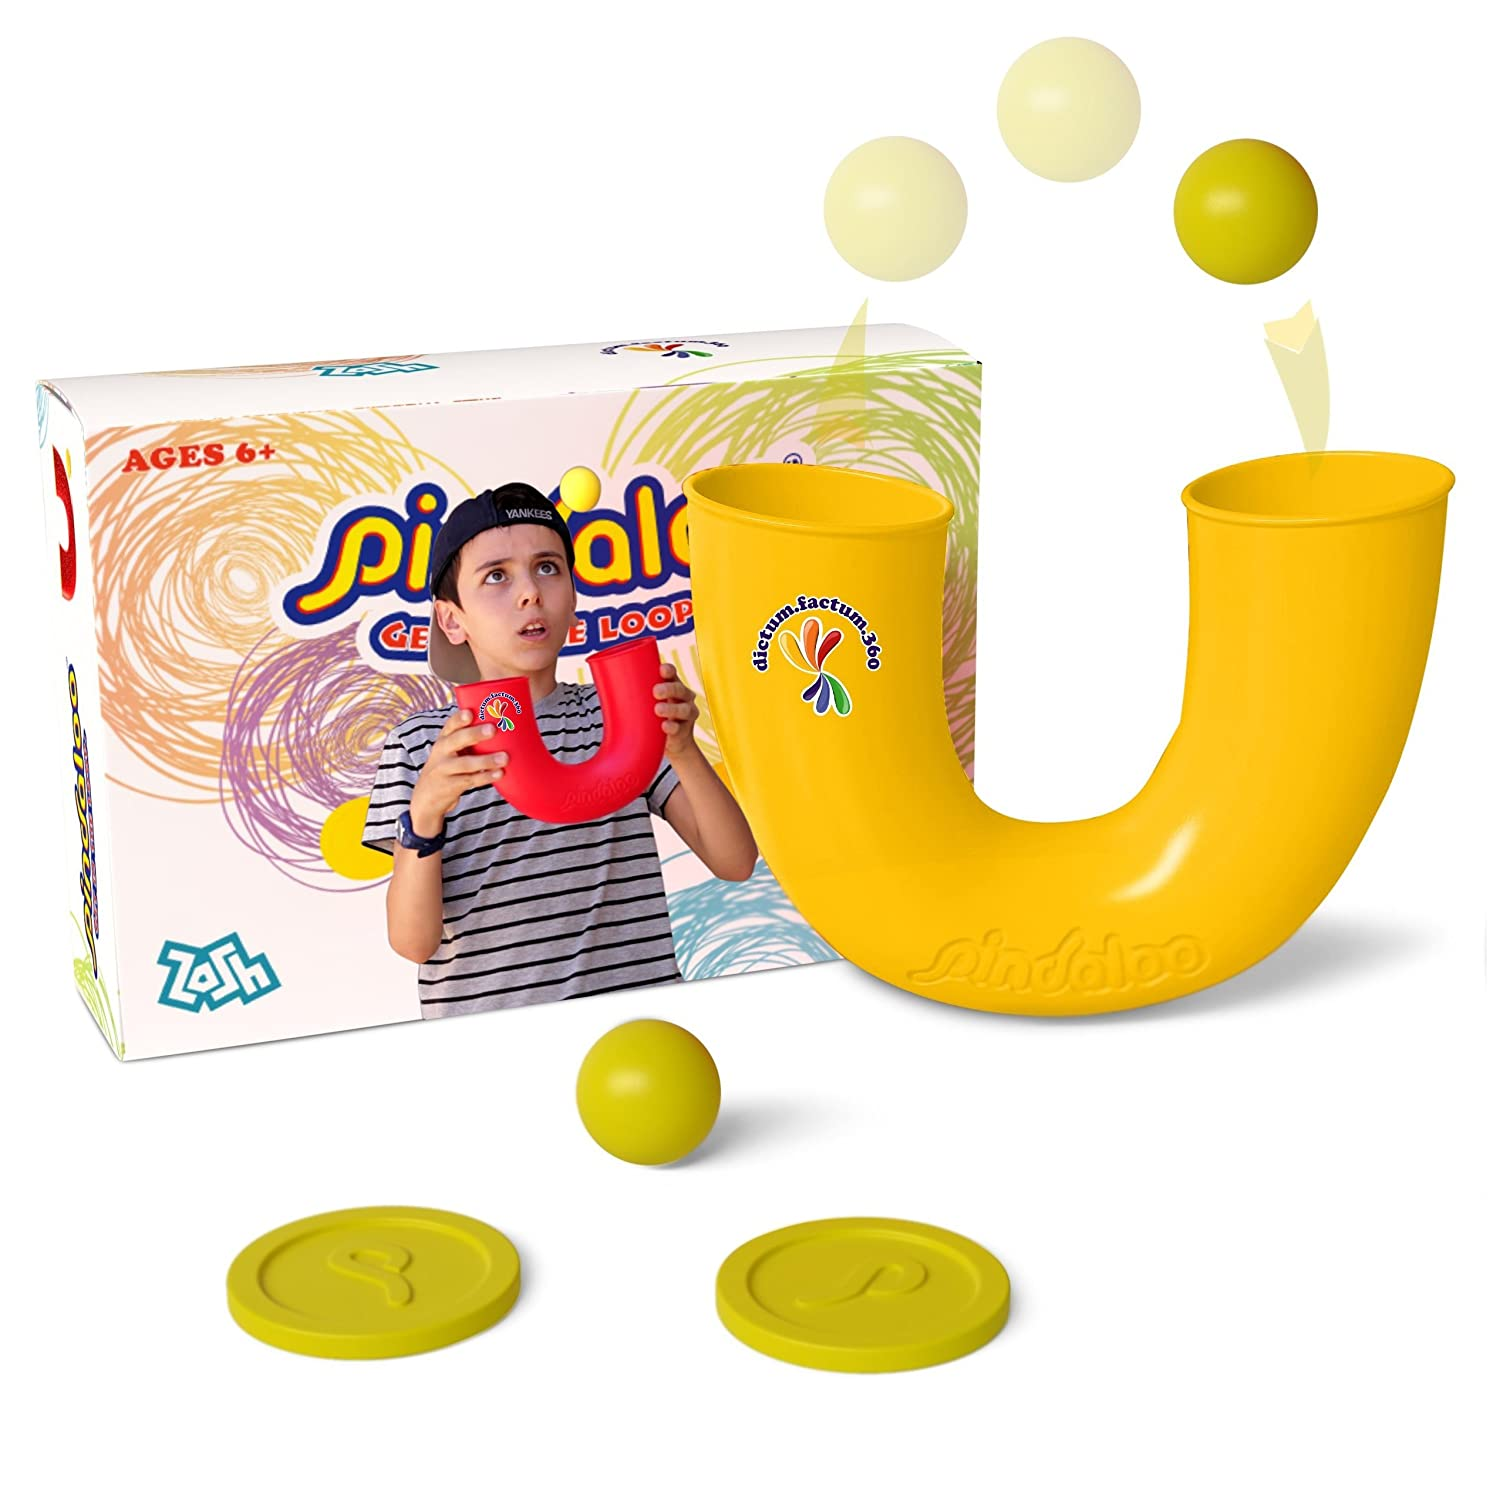 Pindaloo Skill Toy for Kids Adults Develops Creativity Improves Fine Motor Skills Hand Eye Coordination 1 Tube 1 Ball 2 Caps Yellow